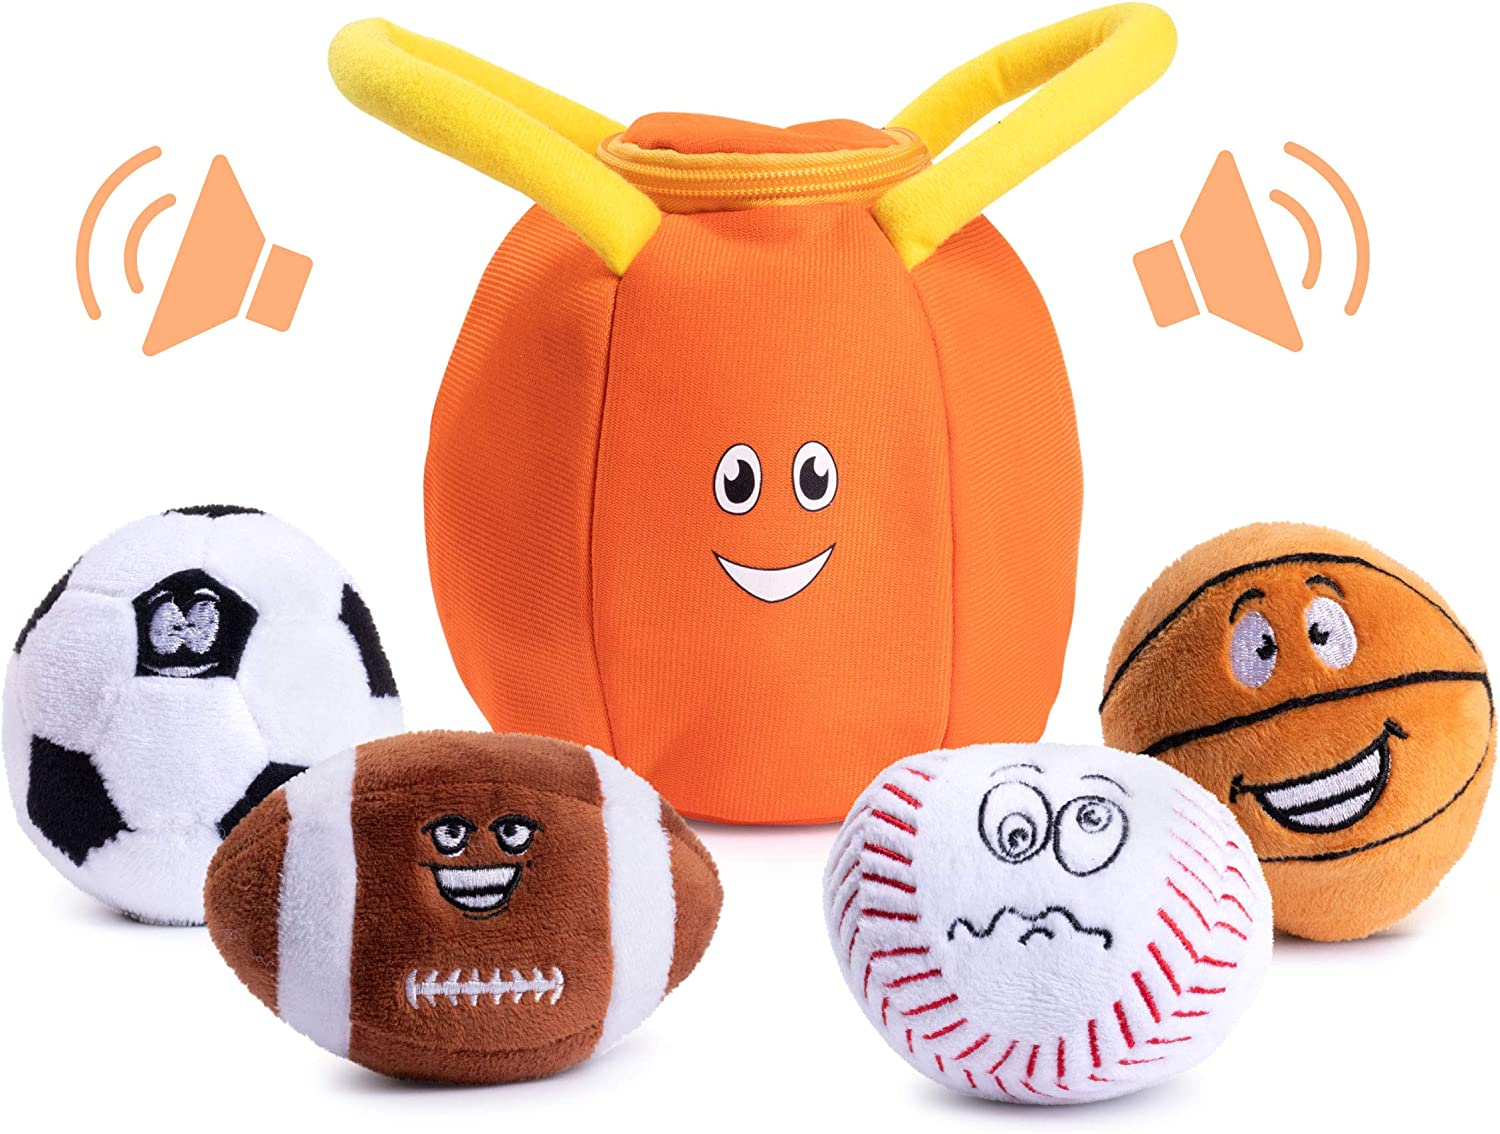 Plush Creations Sports Plush Bag with 4 Talking Soft Plush Balls. Sport Set Includes Plush Sports Bag Plush Basketball Plush Baseball Plush Soccer Ball and Plush Football. Great Baby and Toddler Gift